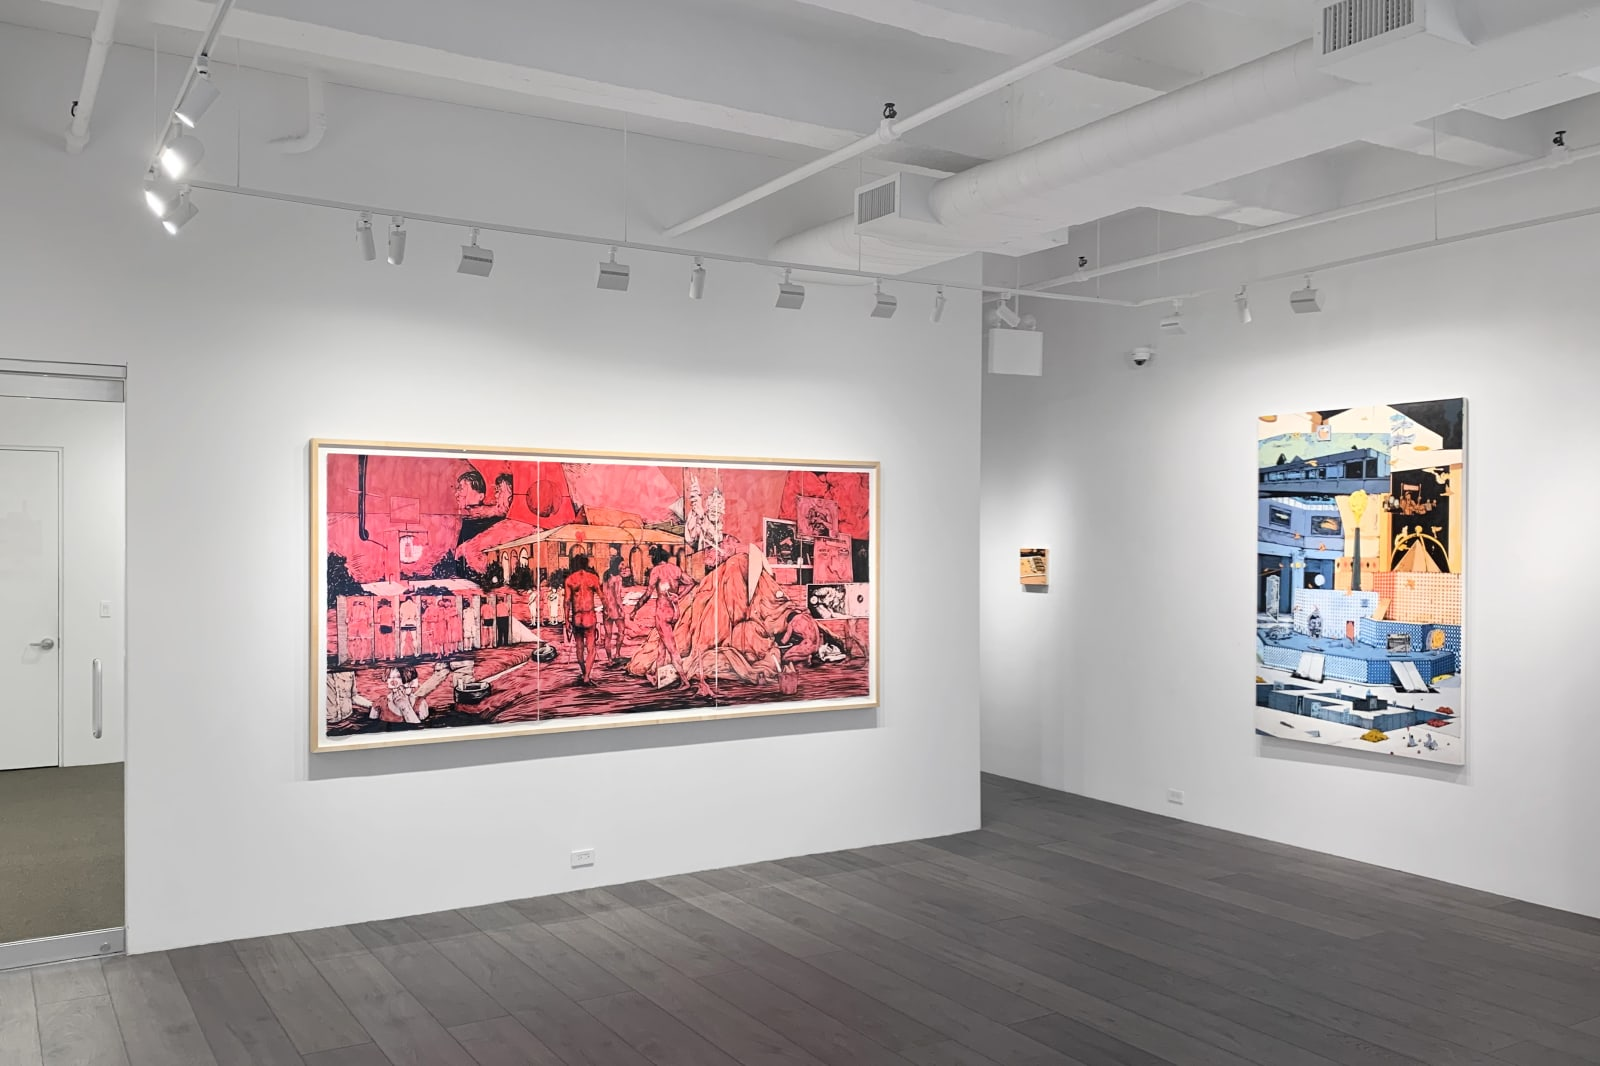 Installation view: William Buchina: Low Information Settings